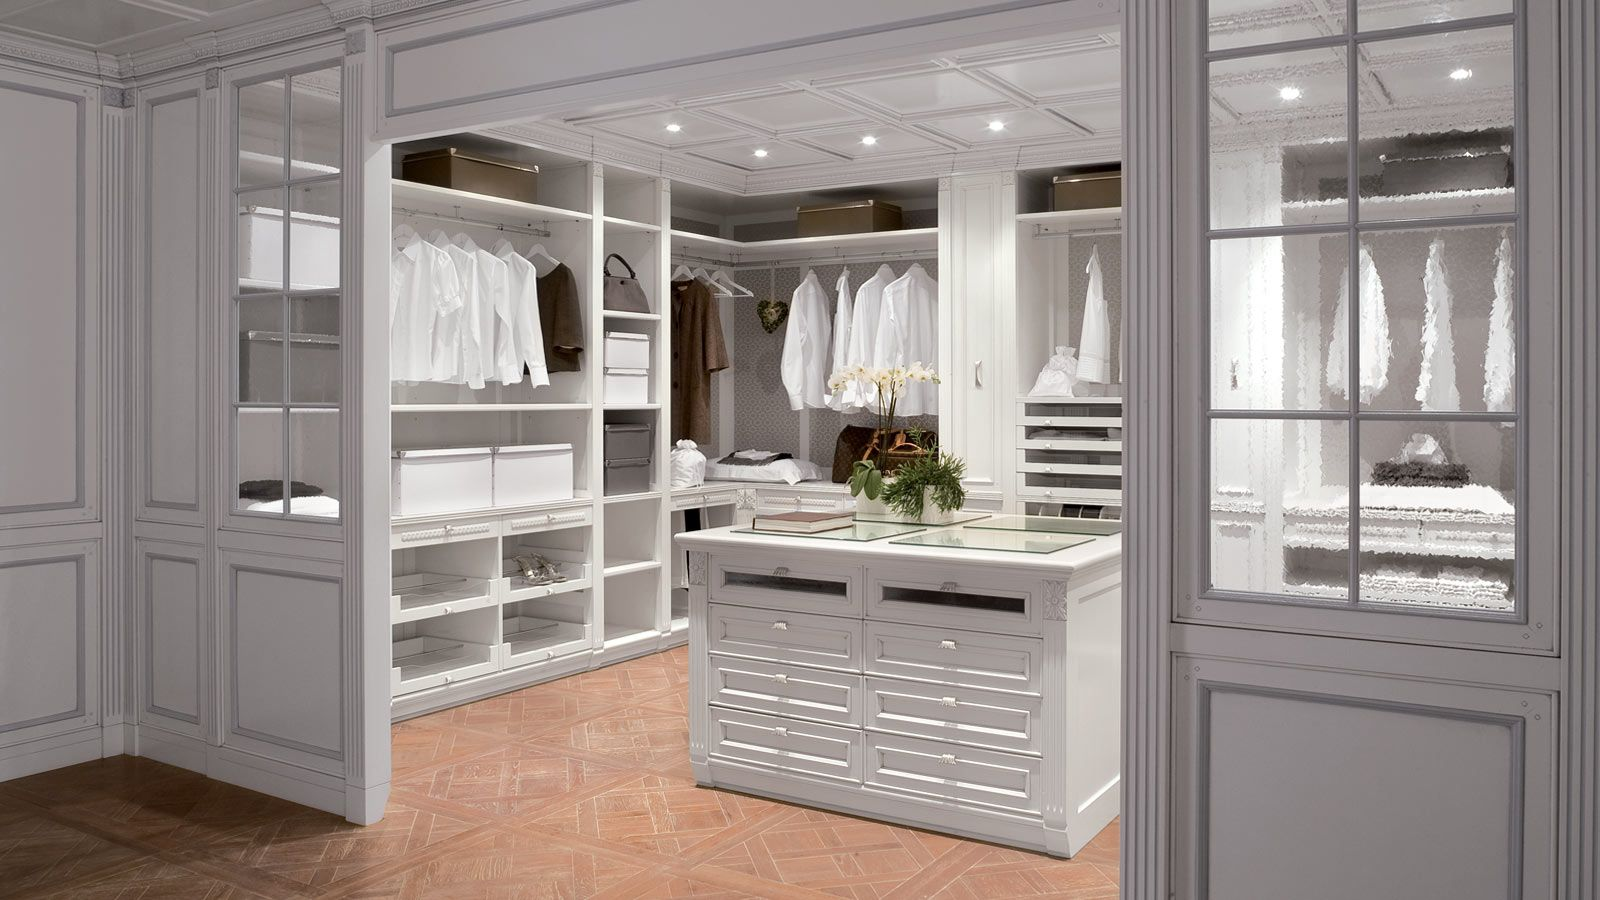 20 Walk In Closet Designs That Are Second To None Part 23